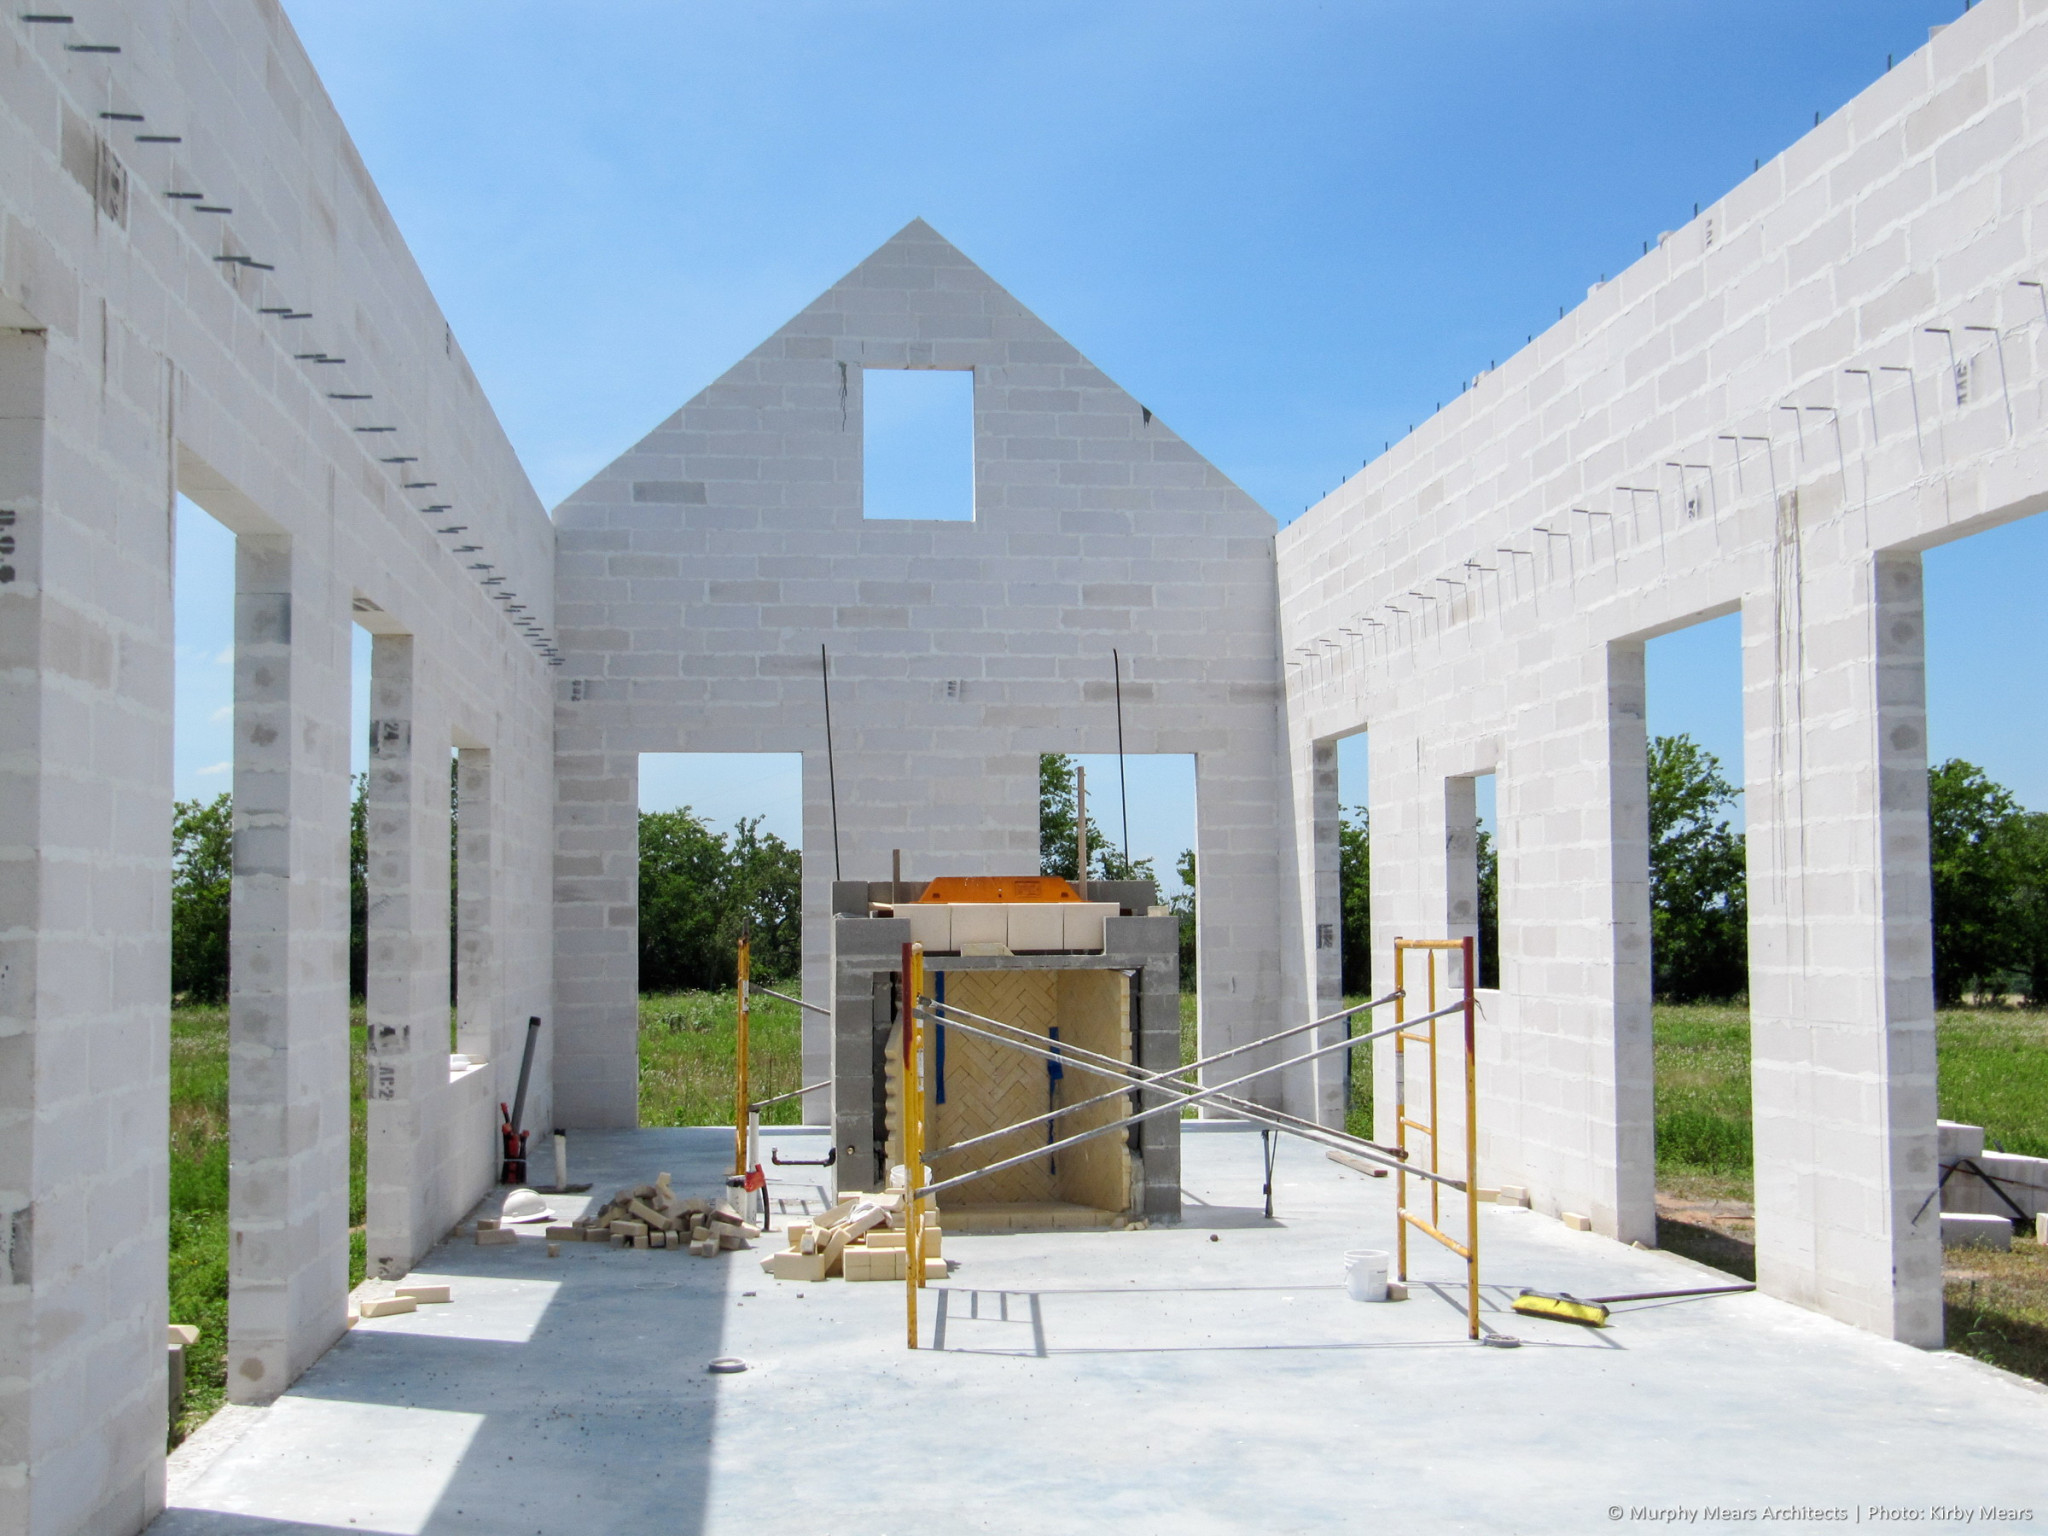 Completed AAC Block structural shell, with central fireplace under construction.